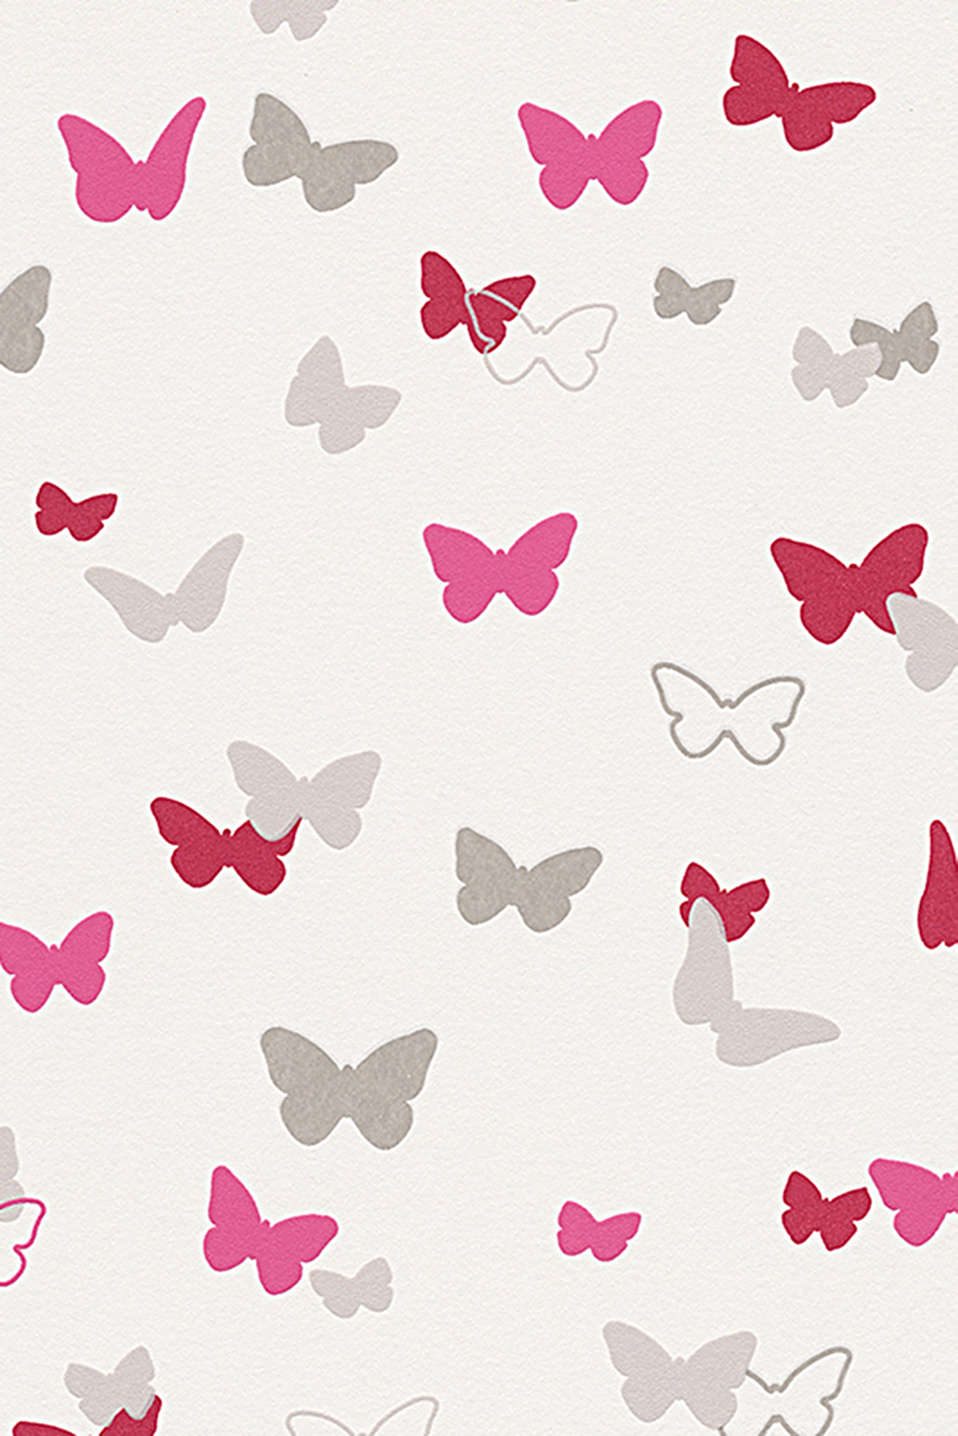 Esprit - Sweet Butterfly Patterned kids wallpaper